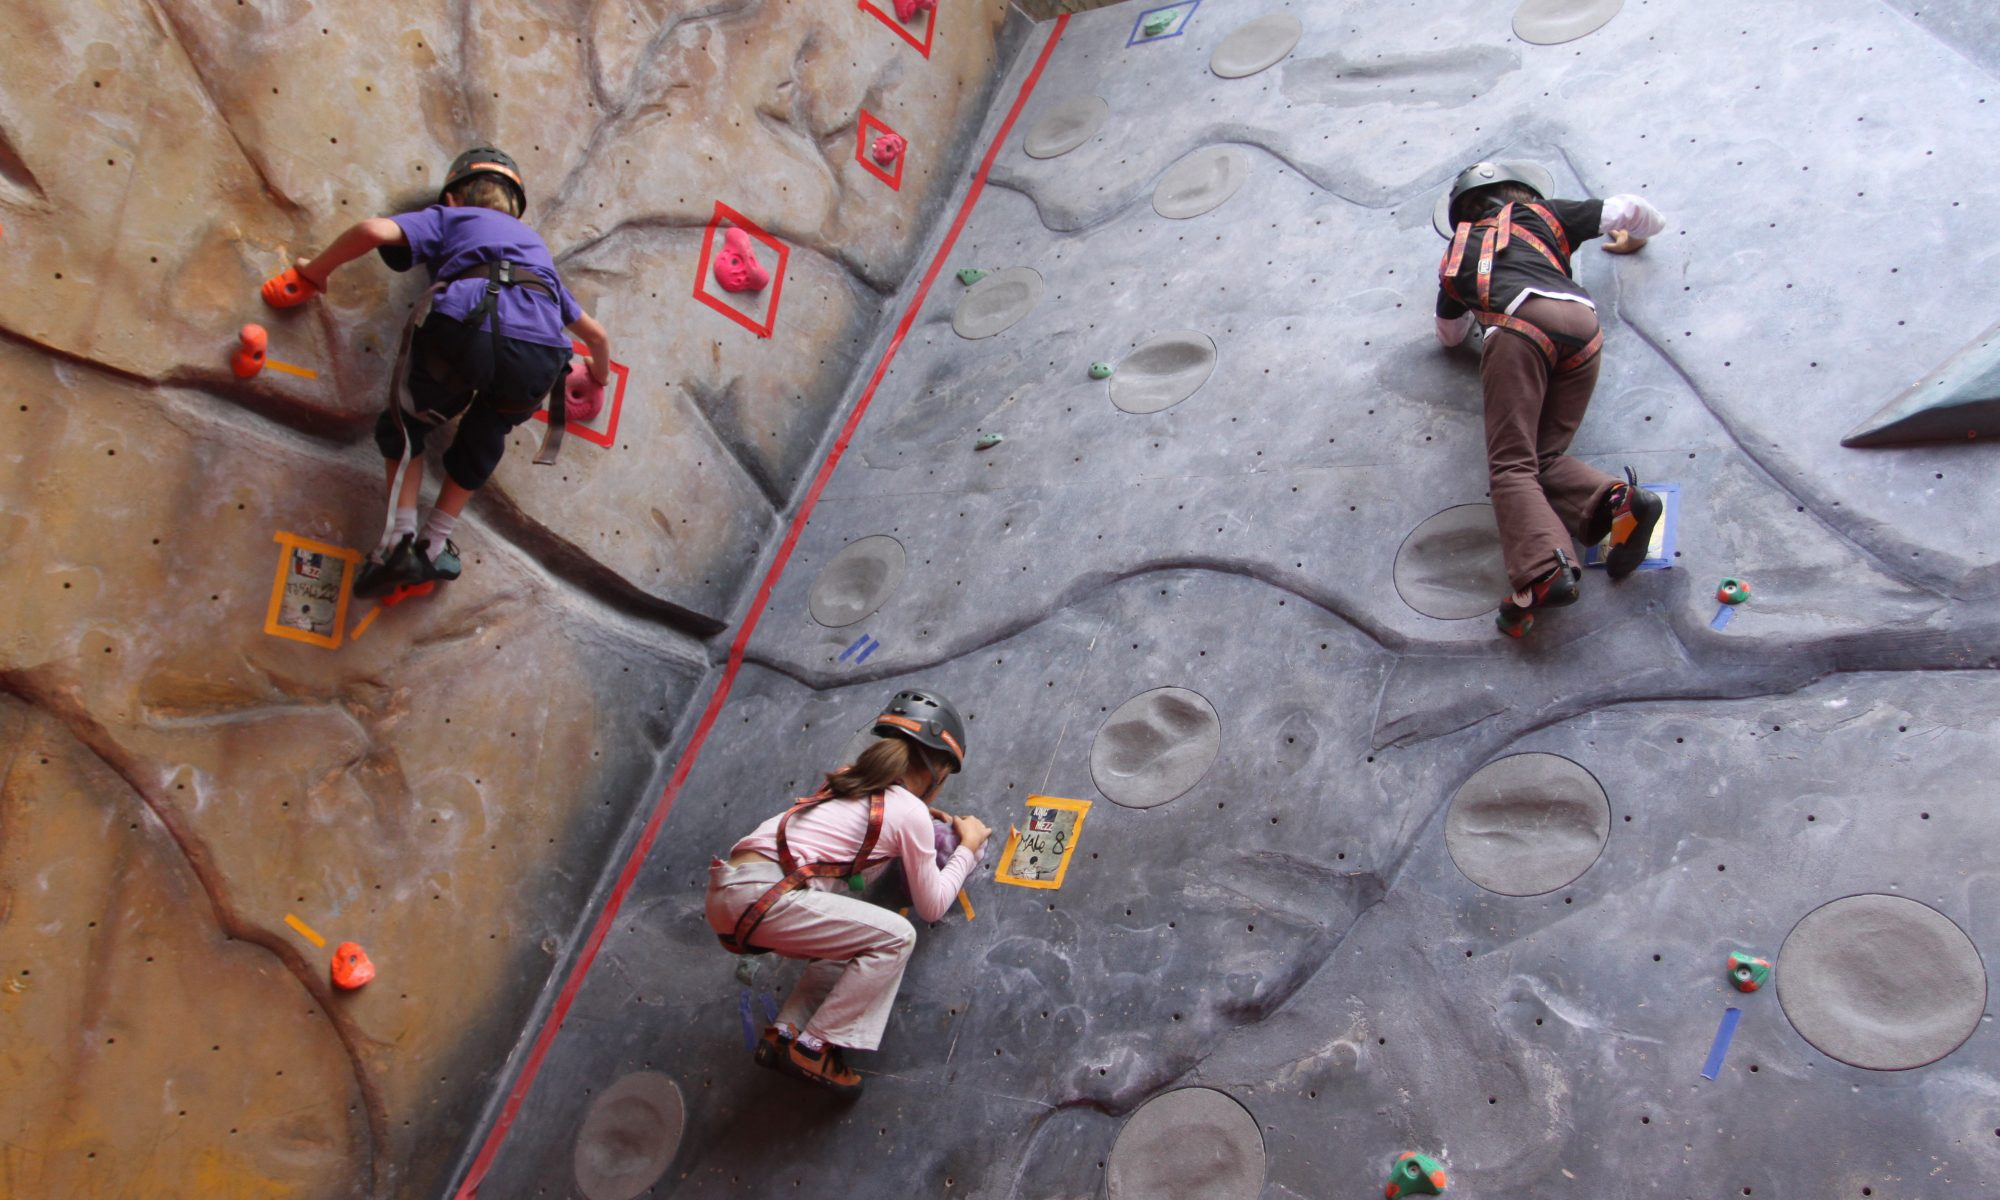 Bouldering at The Castle during a kids' climbing party